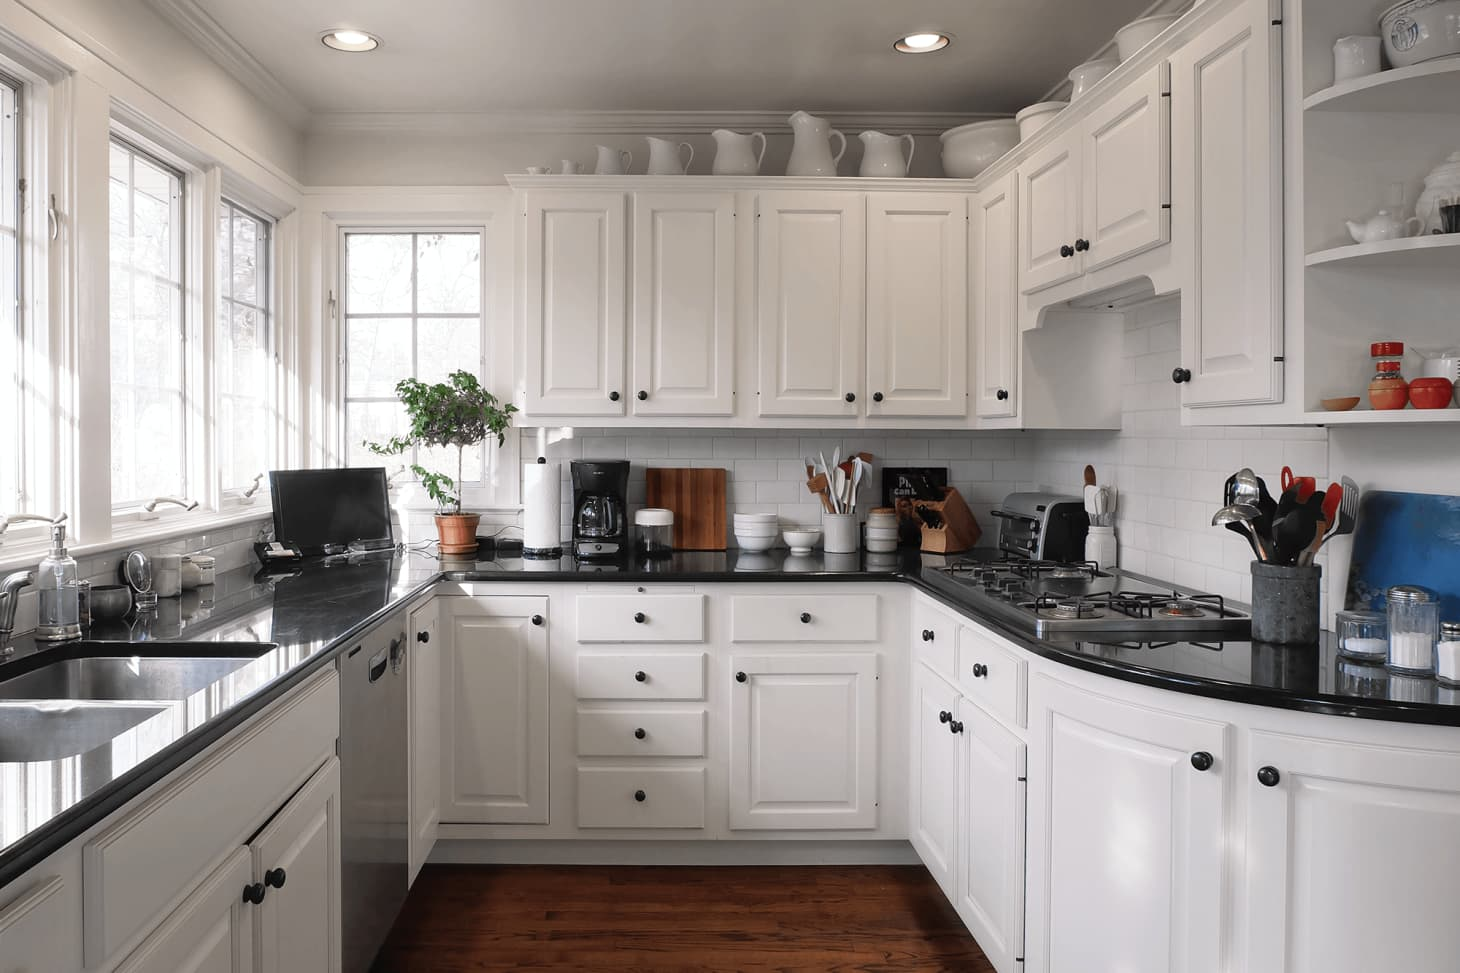 Kitchen Cabinet Styling Tips | Apartment Therapy